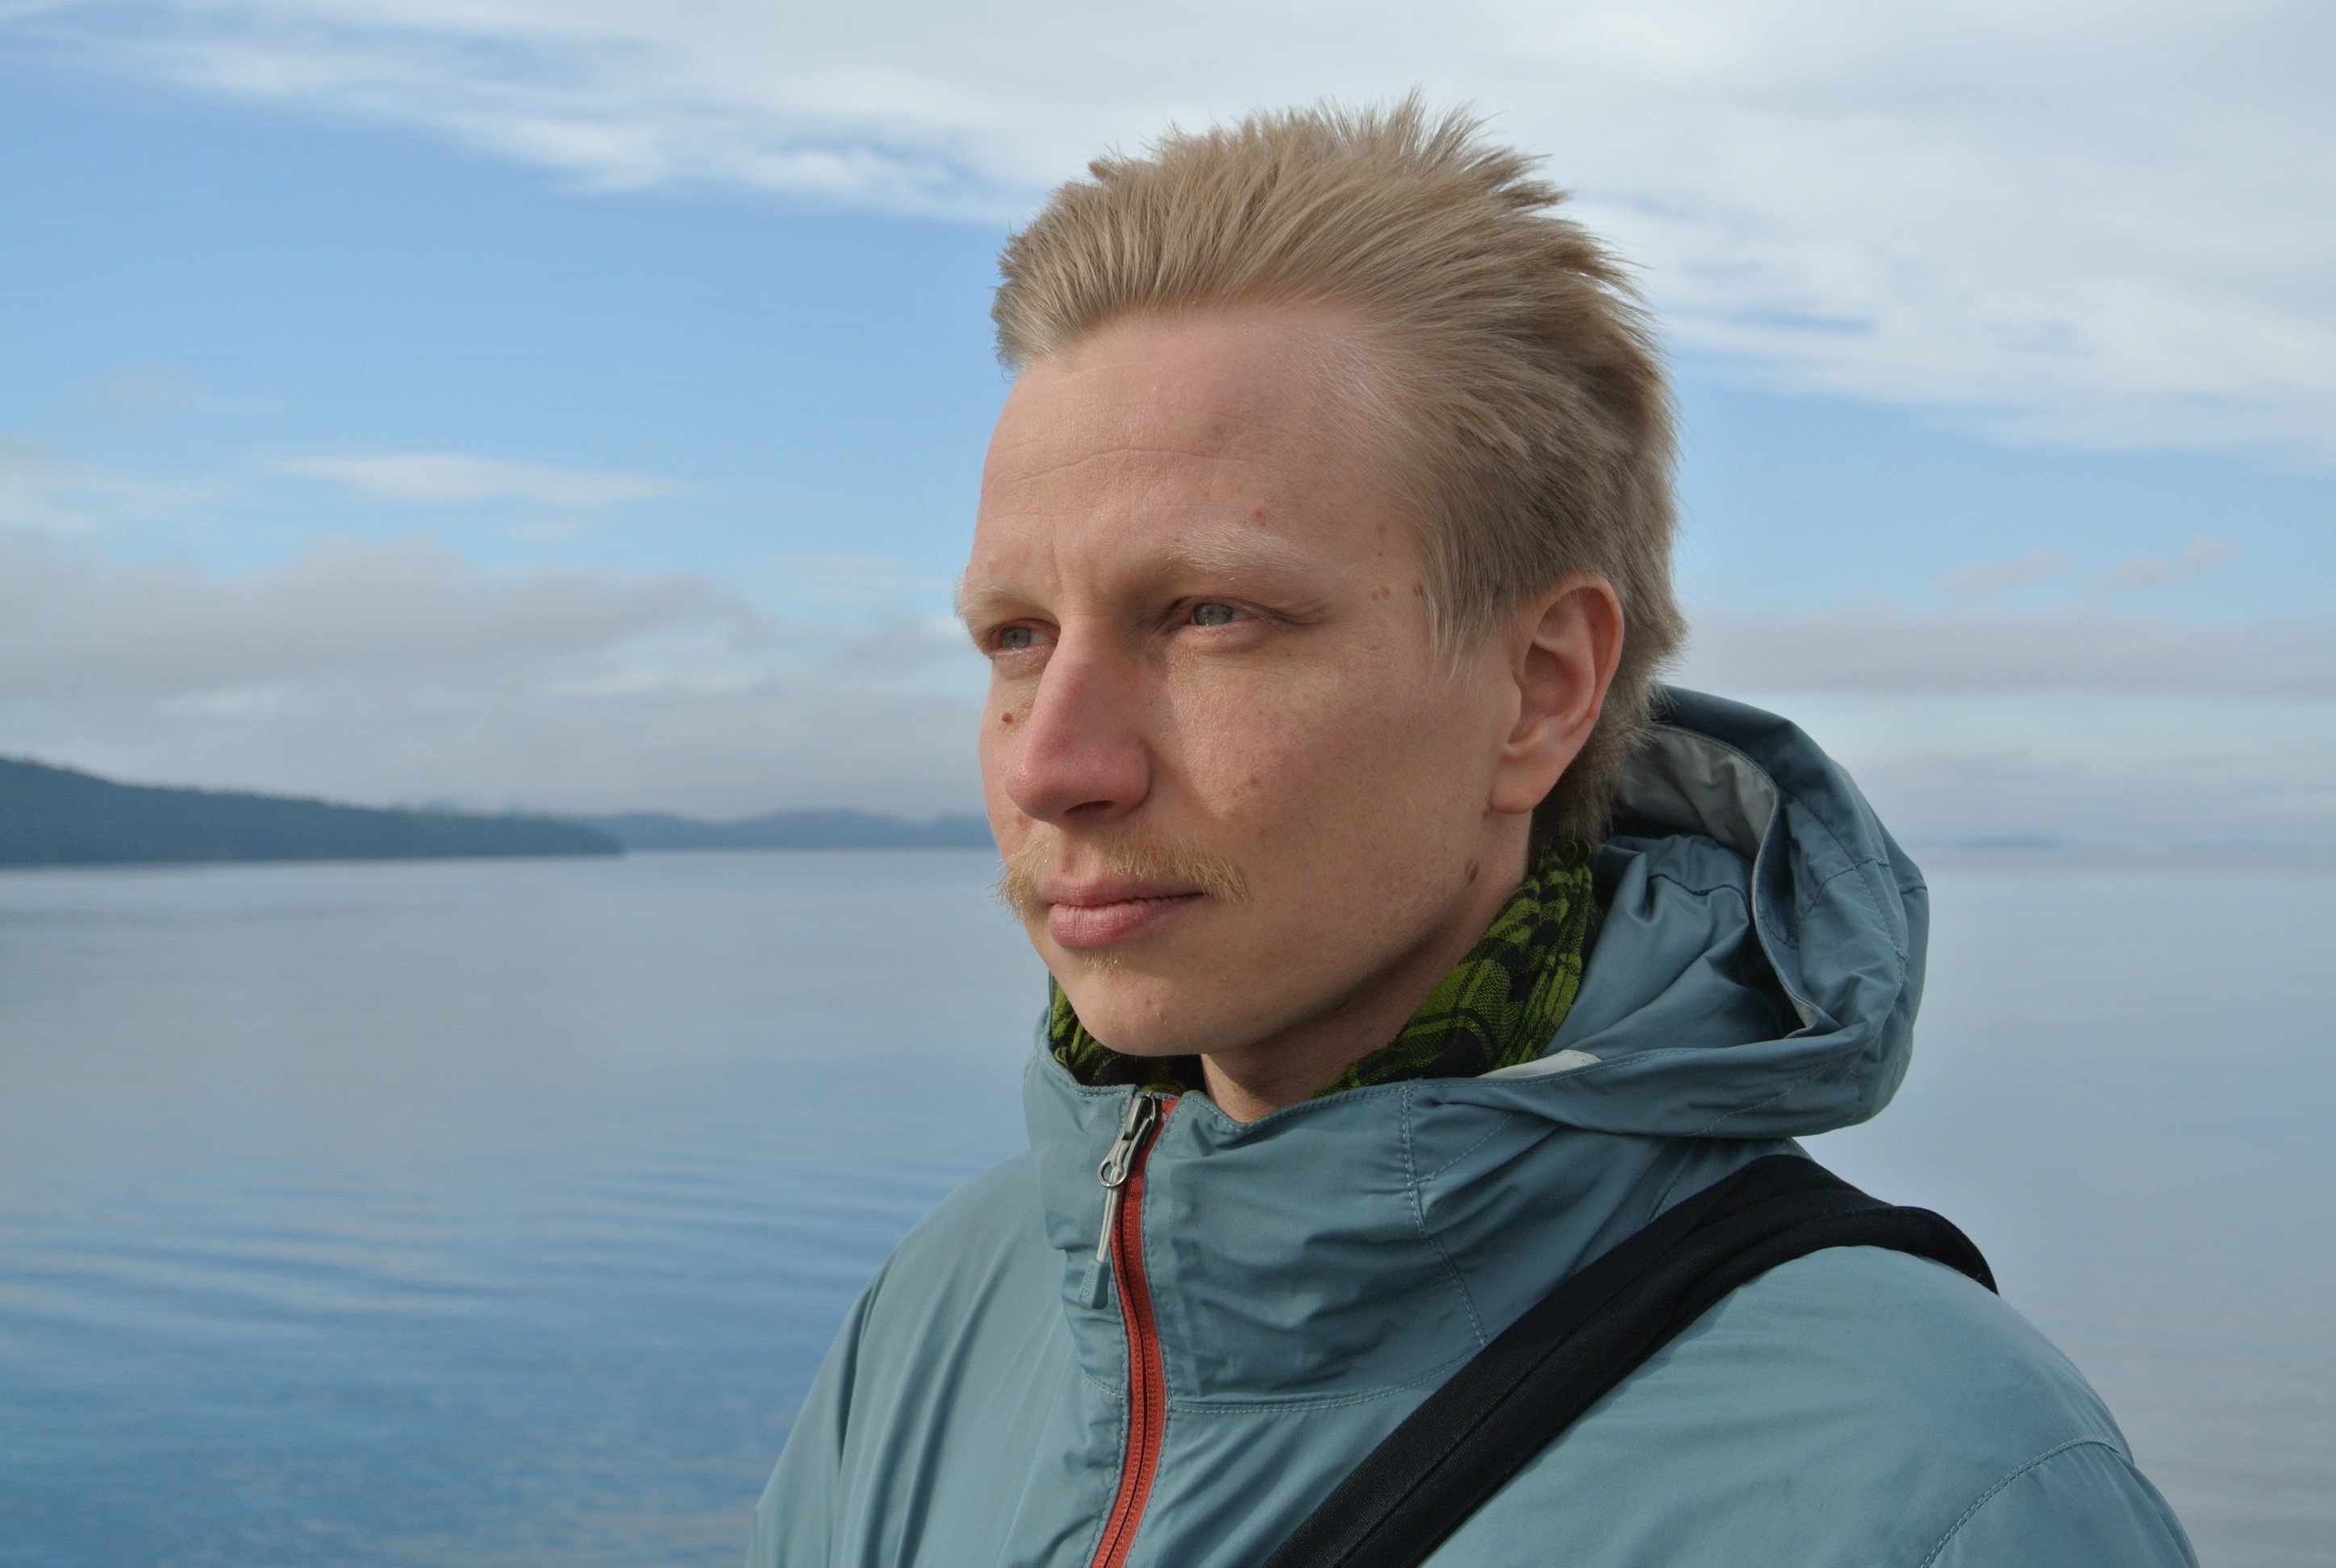 Facing with the wind heading to Vancouver island | Portrait by Sanna Kyllönen